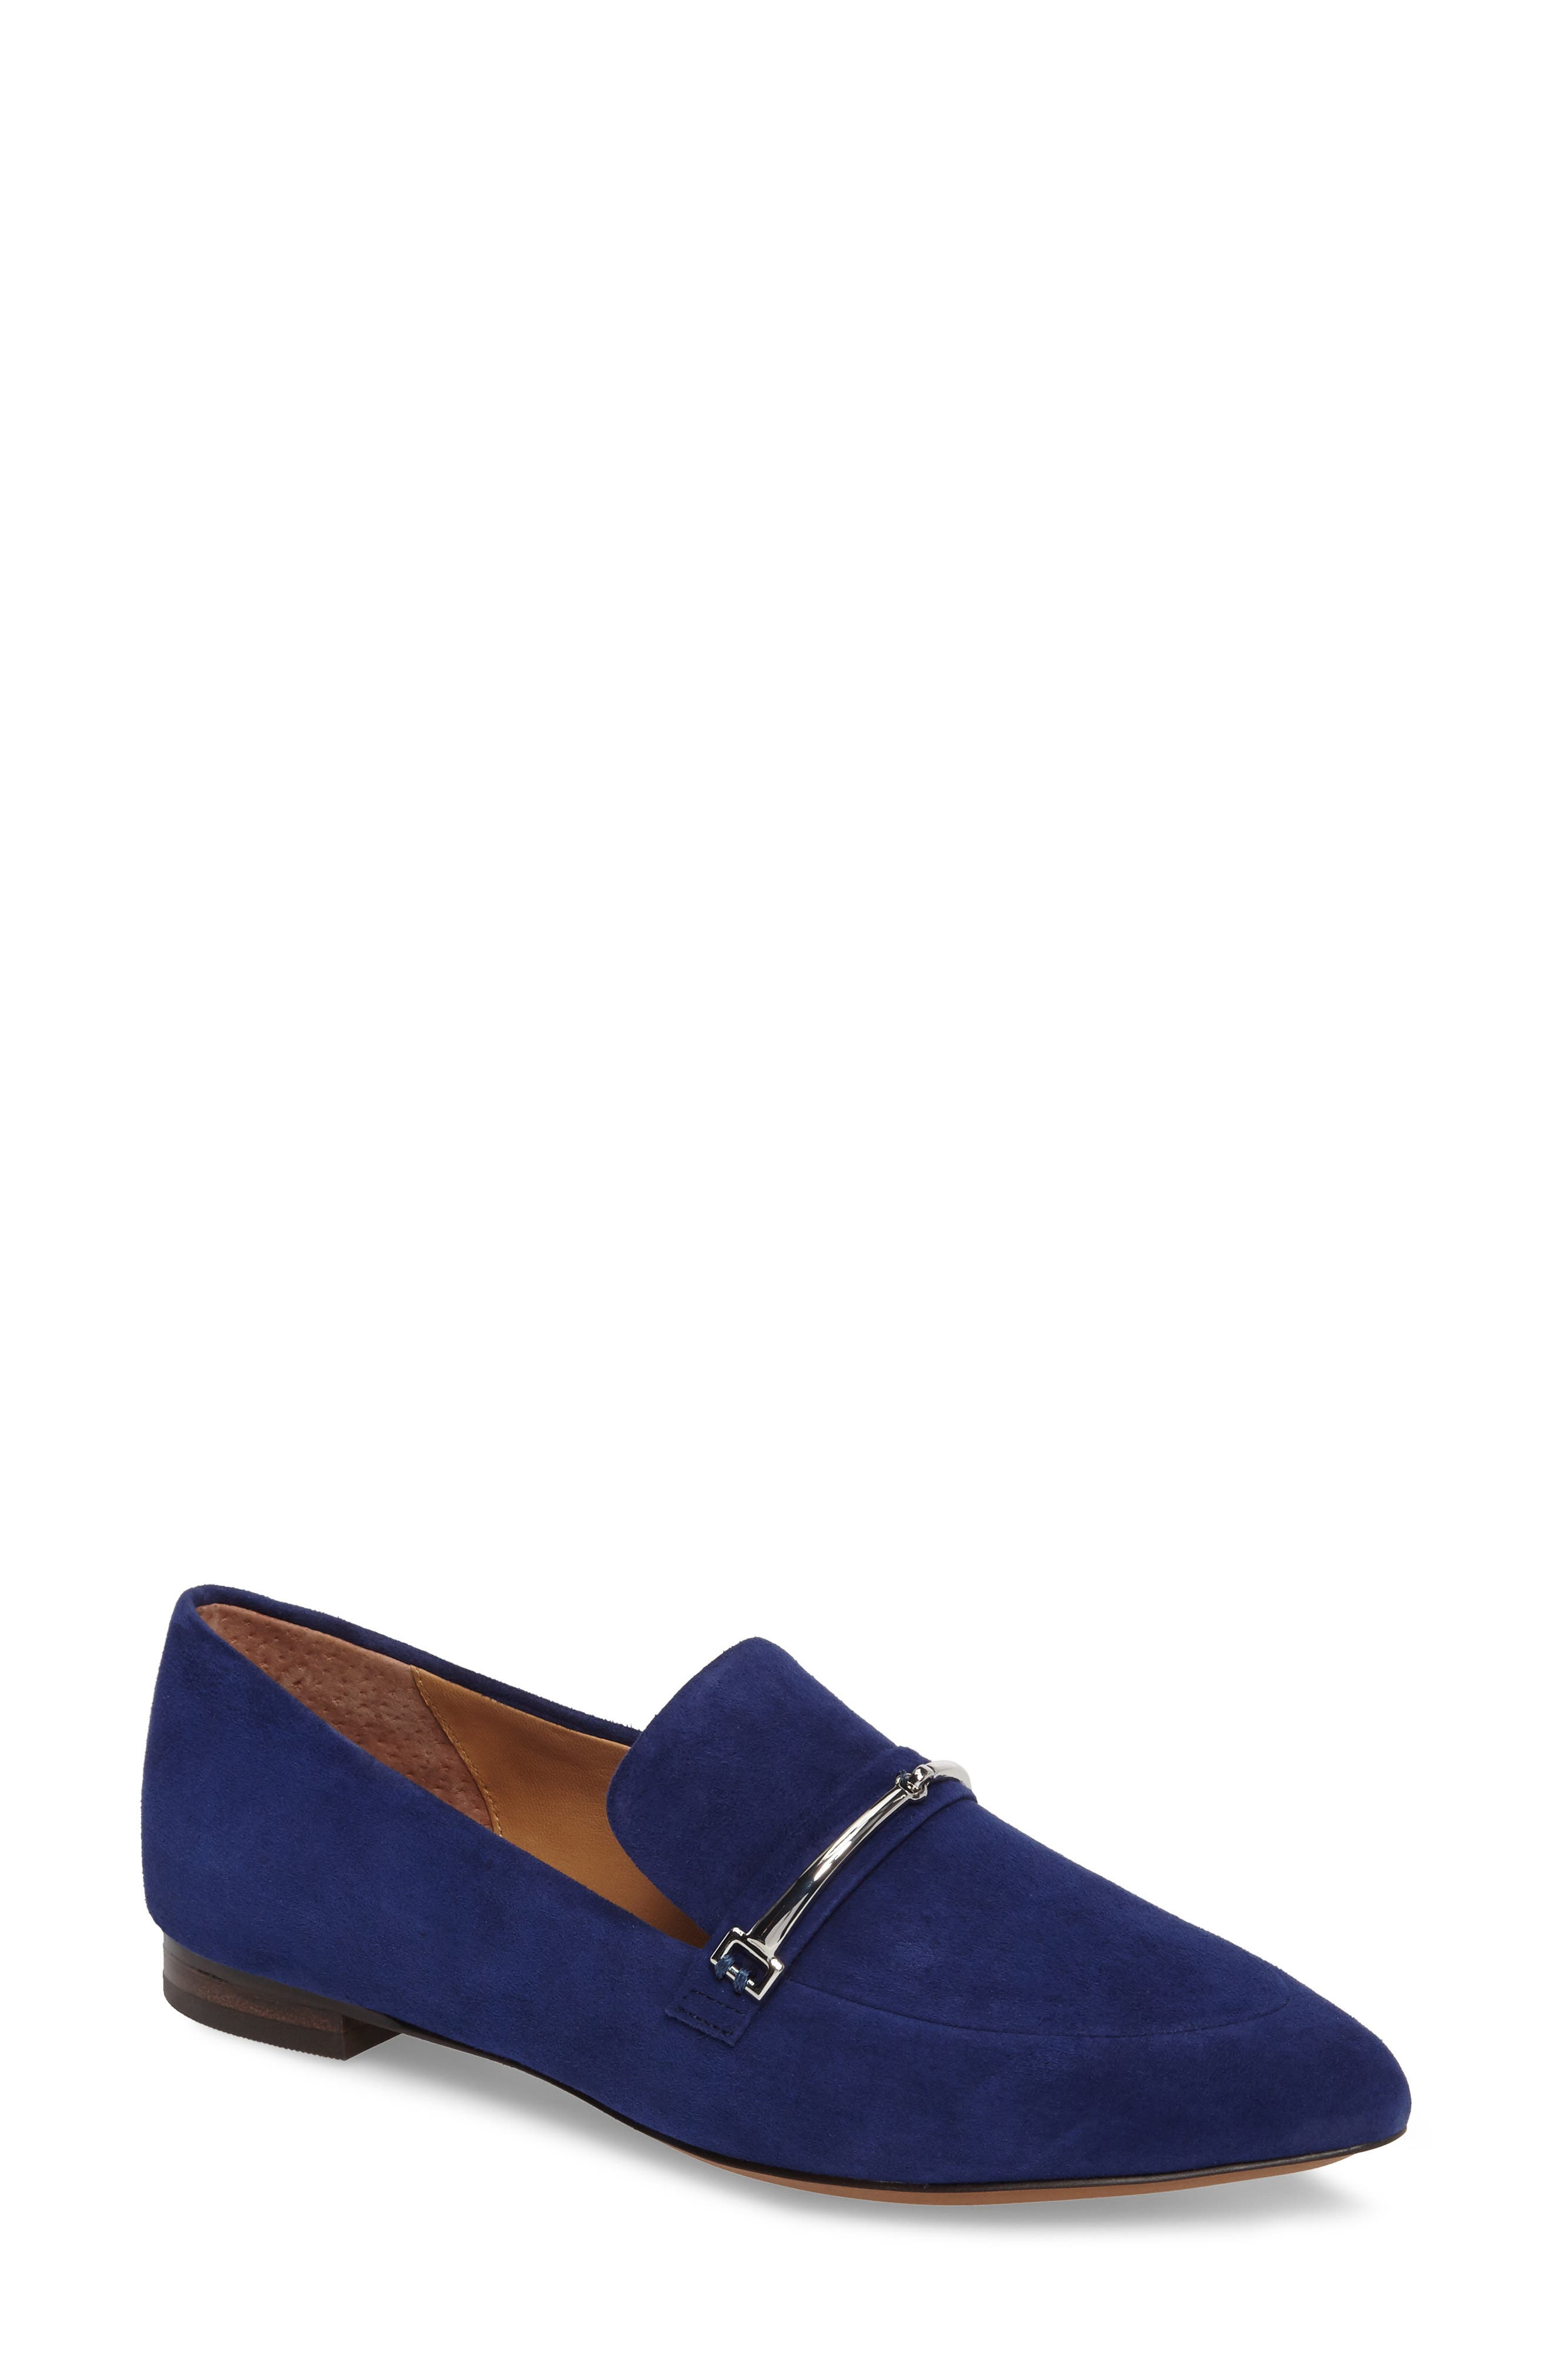 Main Image - Linea Paolo Molly Loafer (Women)